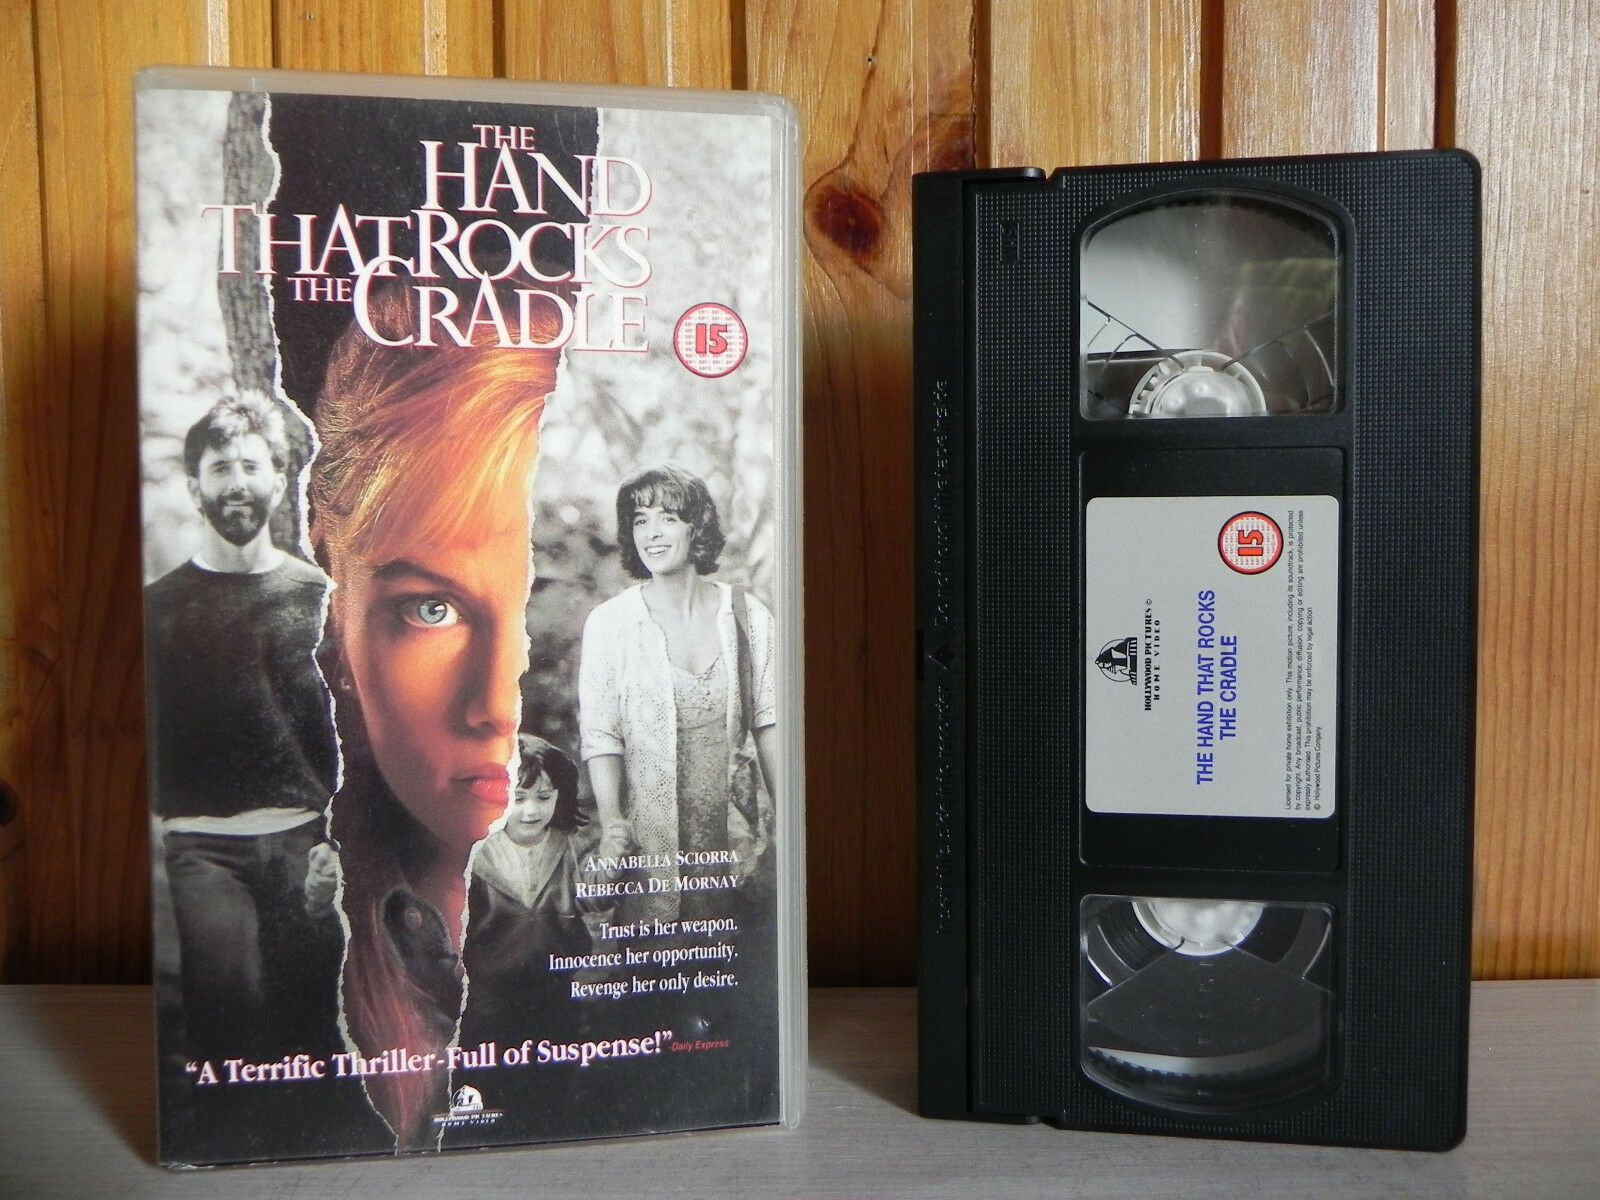 The Hand That Rocks The Cradle - Hollywood Pictures - Thriller - Suspense - VHS